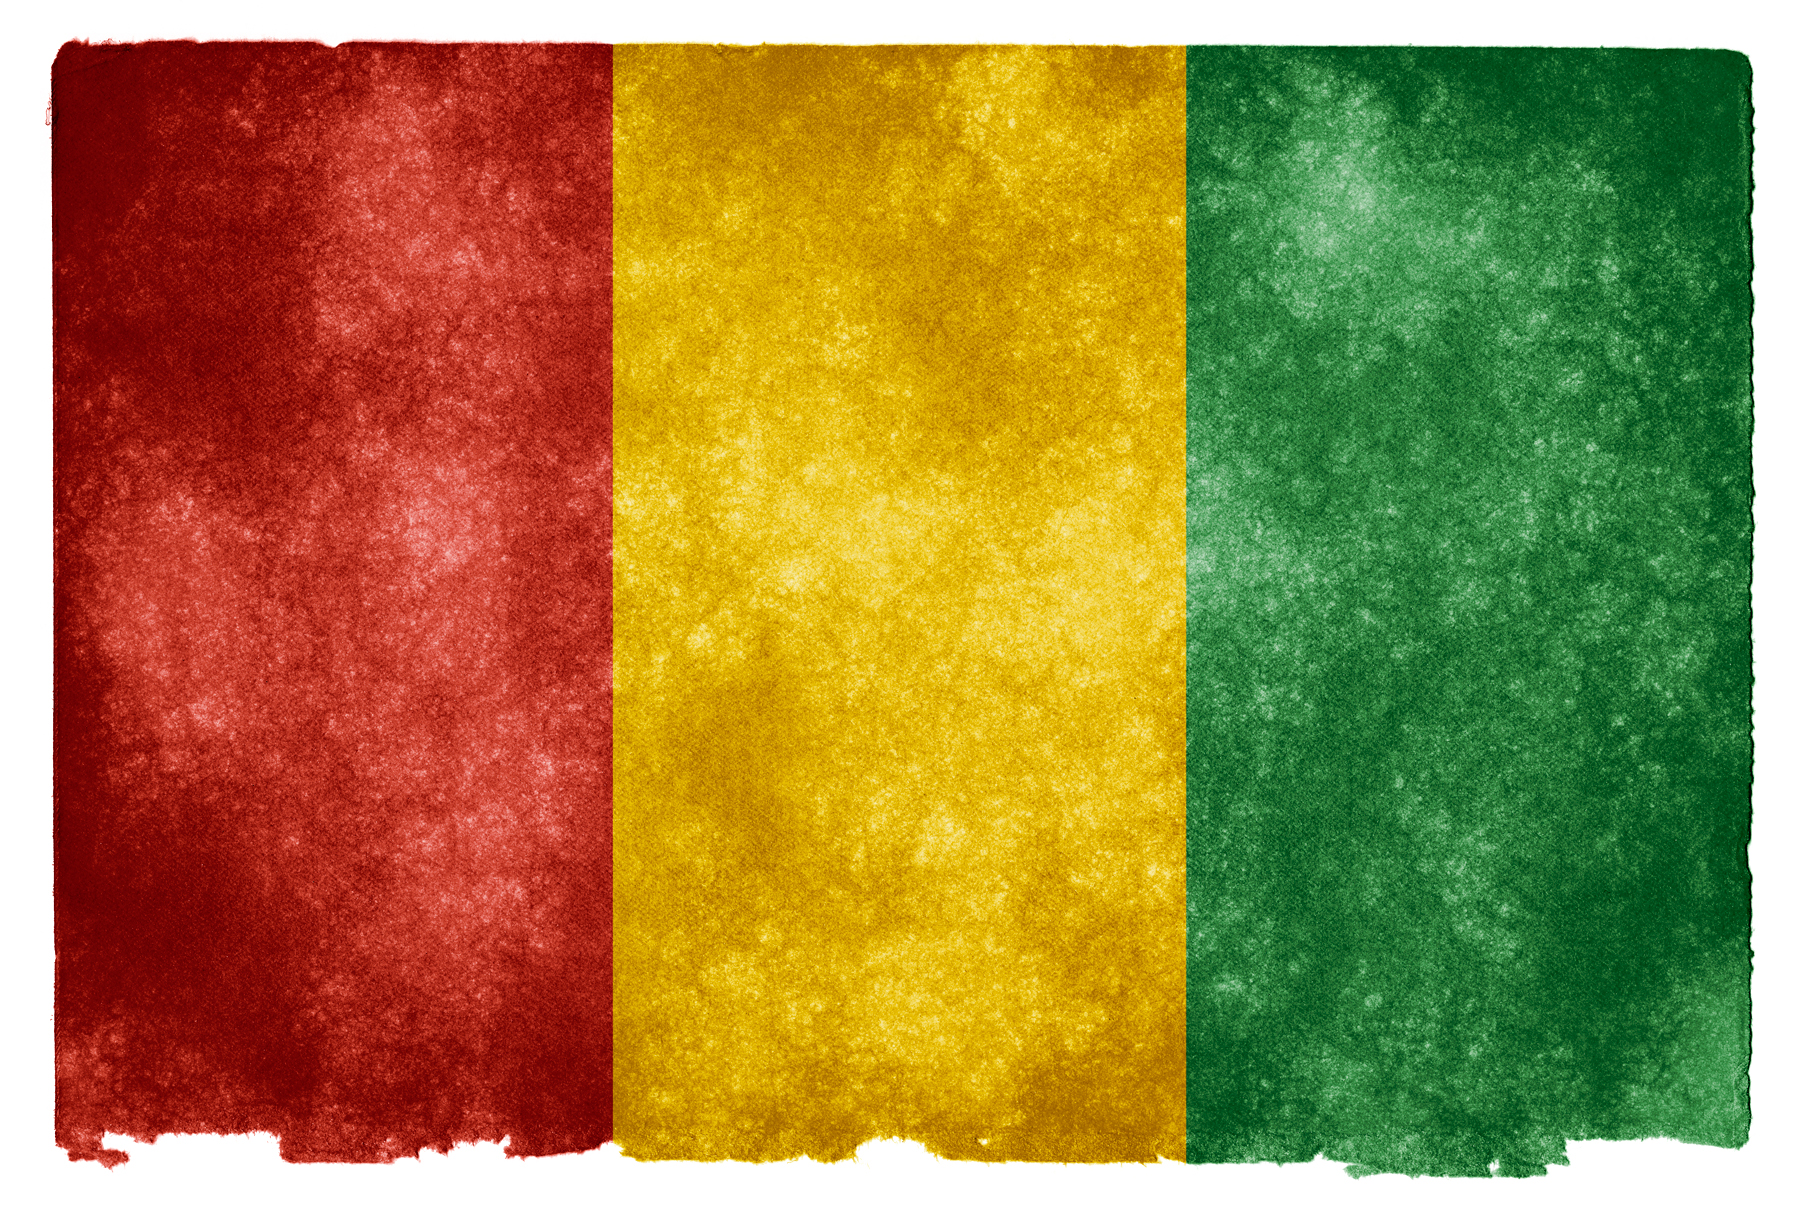 Guinea Grunge Flag, Africa, Retro, Old, Page, HQ Photo